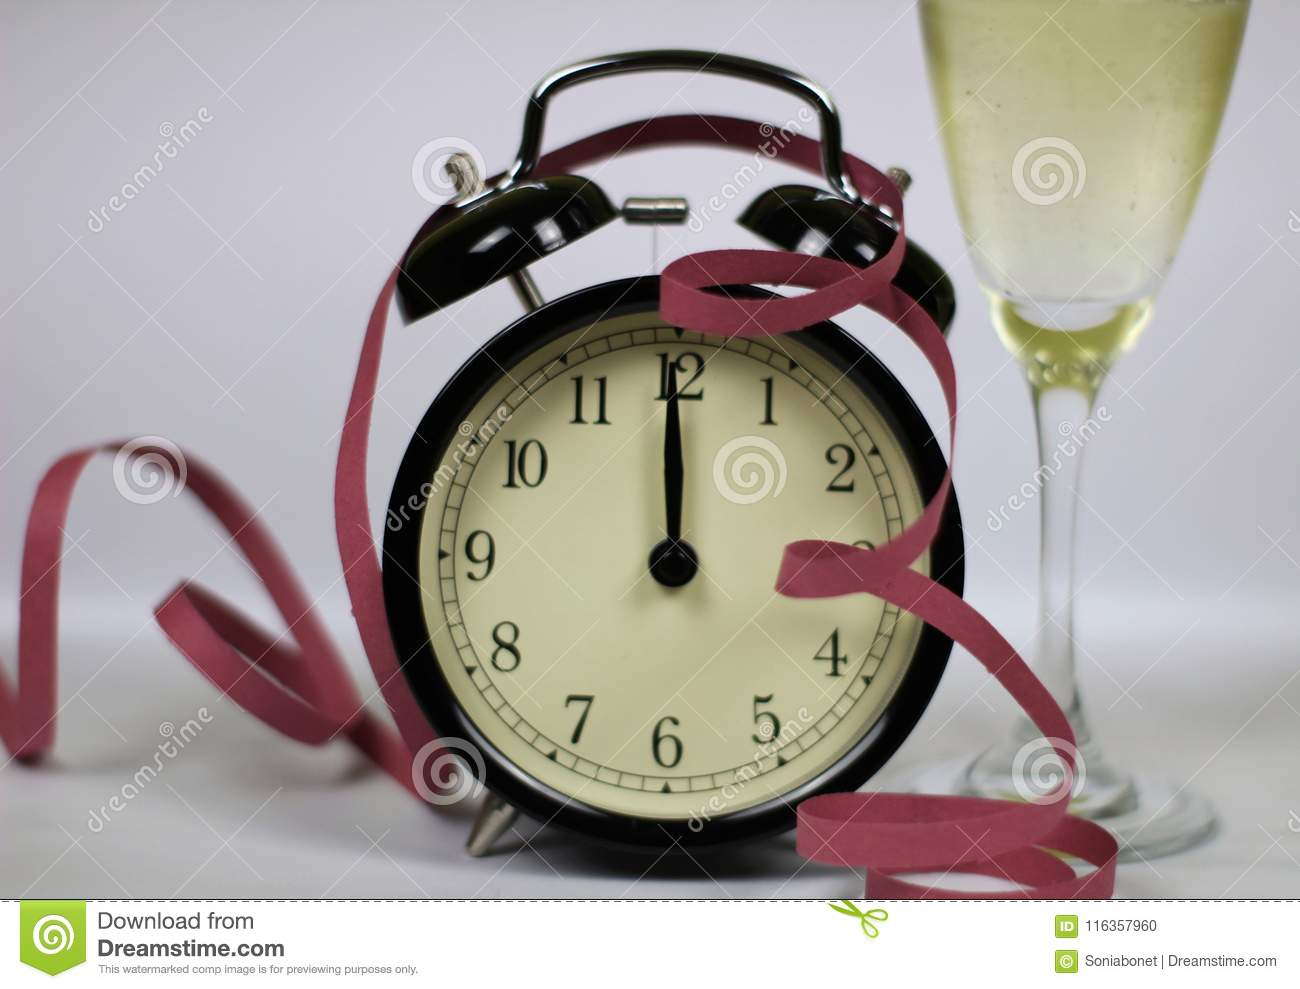 Christmas and new year's eve celebration and countdown